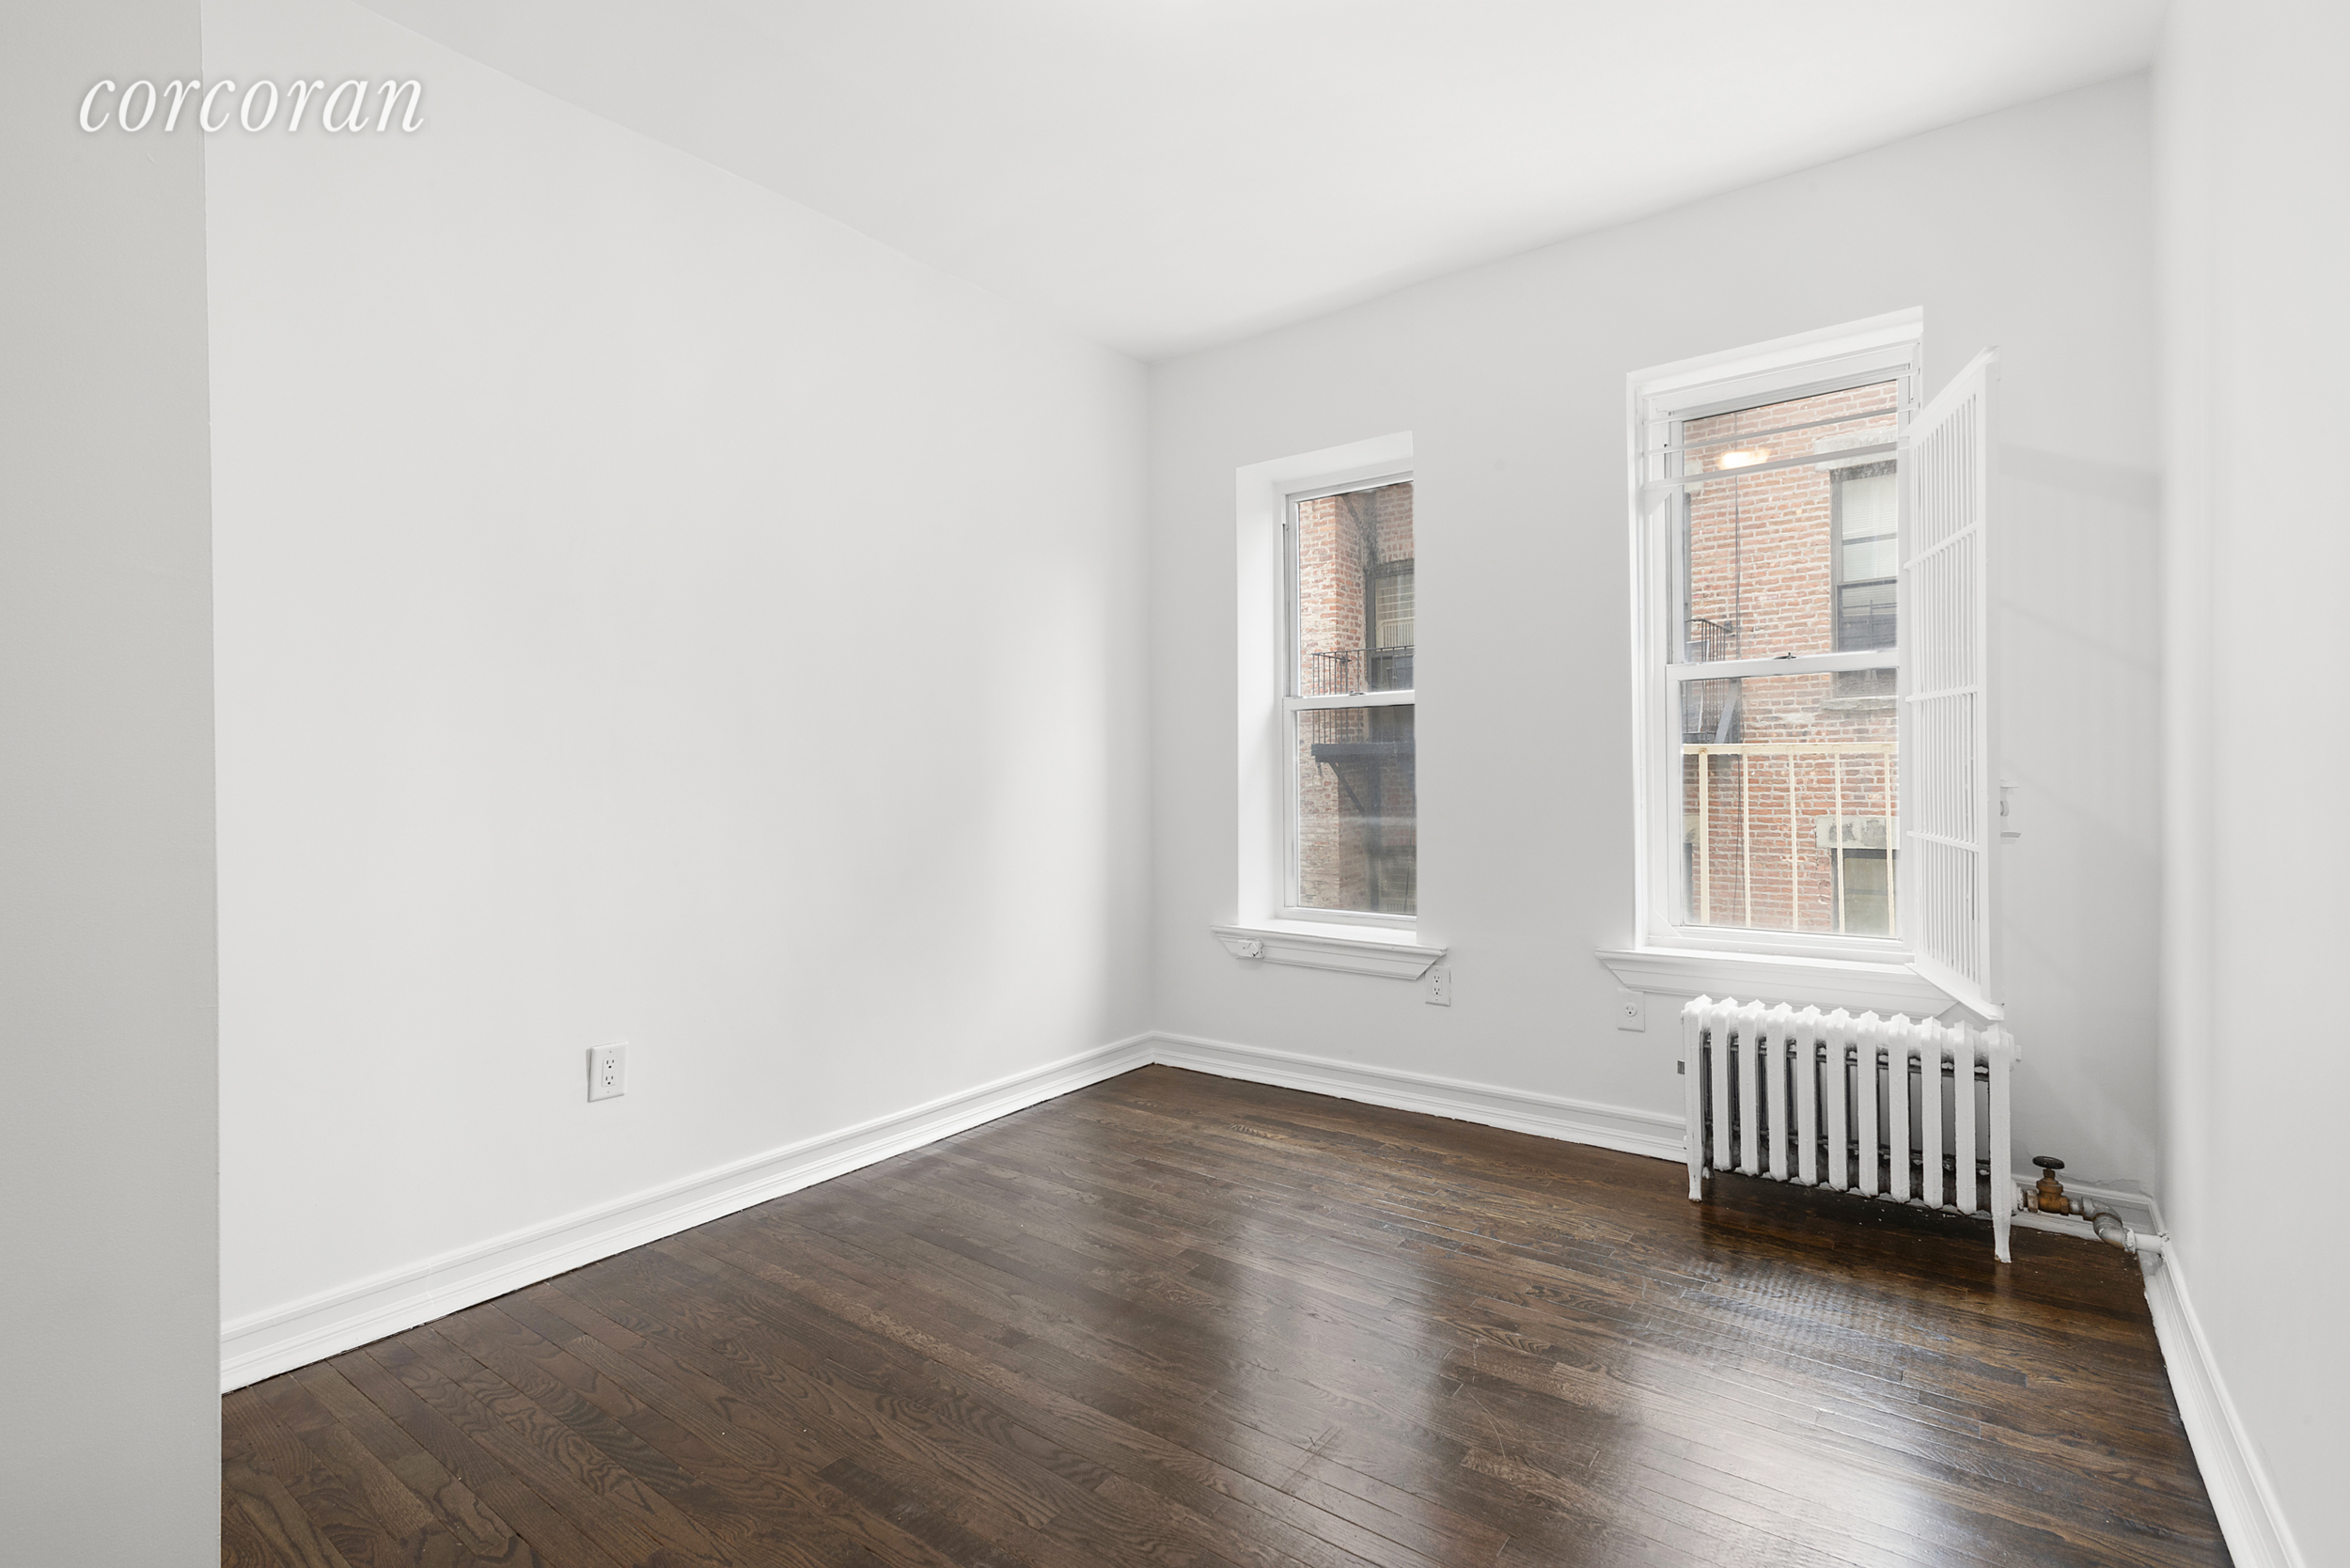 This is the best priced two bedroom rental in the East Village! Up two short flights into  317 East 3rd #16  where there are five windows in the apartment providing lots of natural light throughout the day (& multiple exposures for air flow). The living area can accommodate a couch, dining table and tv stand. The windowed kitchen has plenty of counter and cabinet space for cooking. The building is in excellent condition with video intercom system and provides free Verizon Fios internet to all occupants.